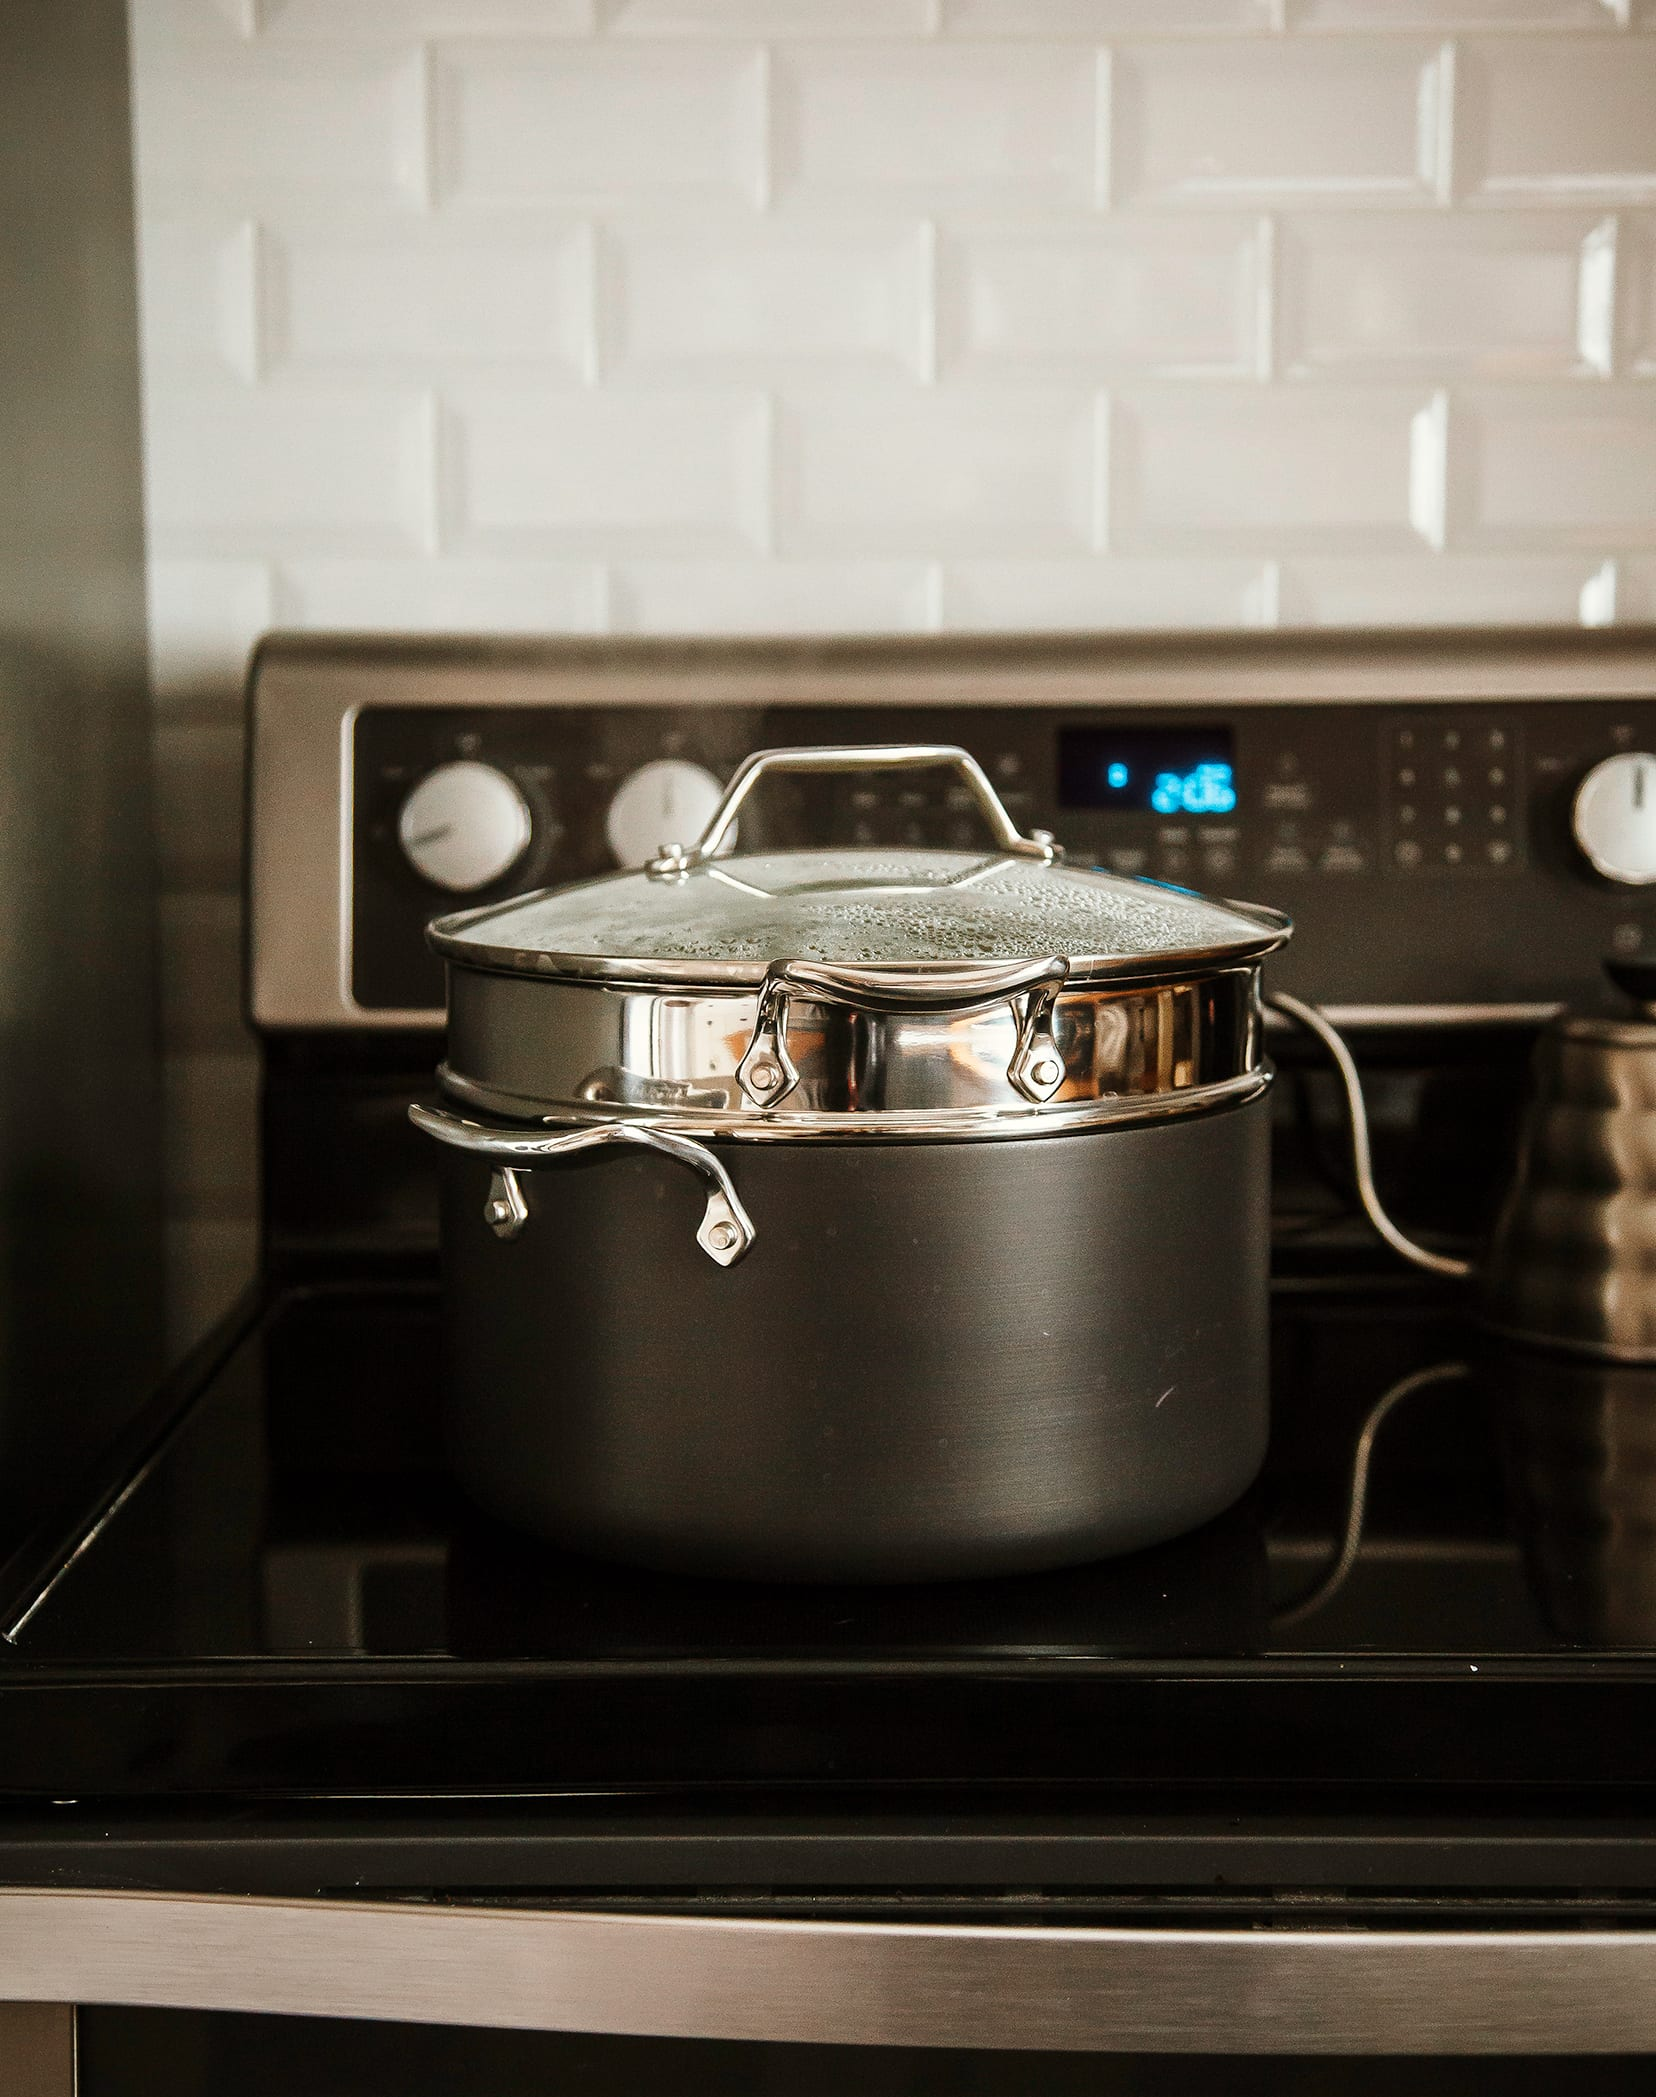 Image shows a double boiler pot on the stove.